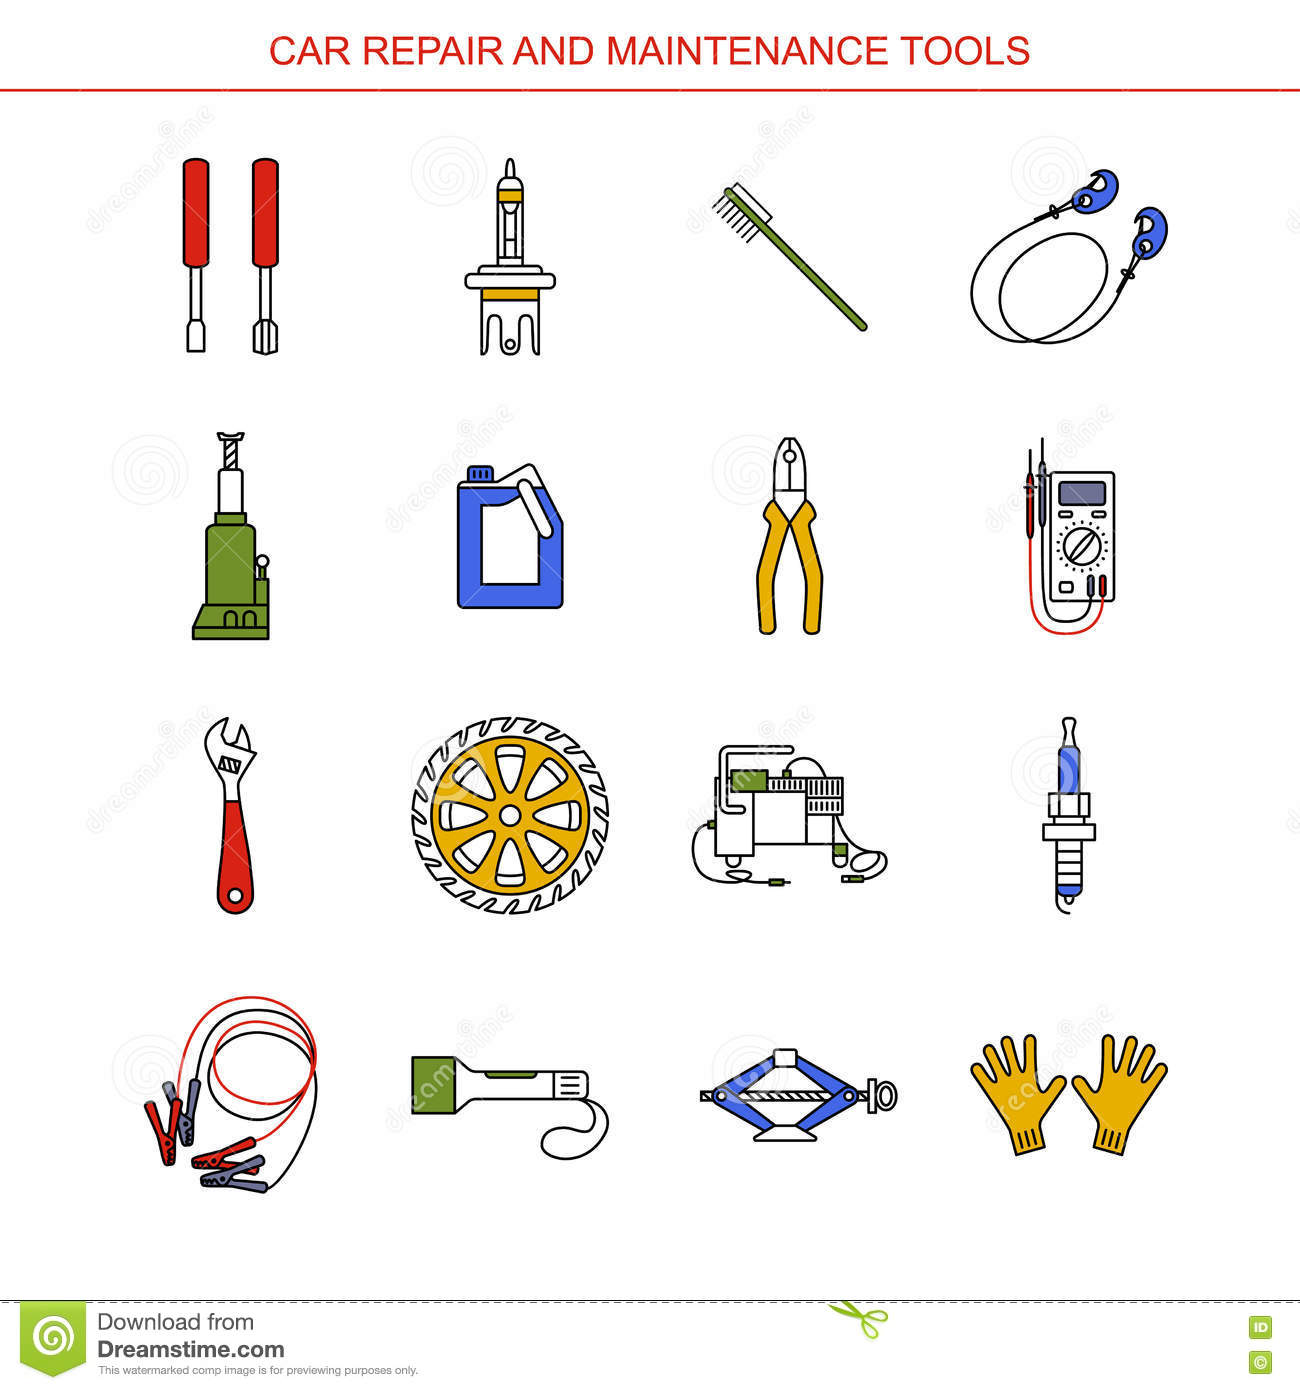 Car Repair And Maintenance Tools Stock Vector Illustration Of